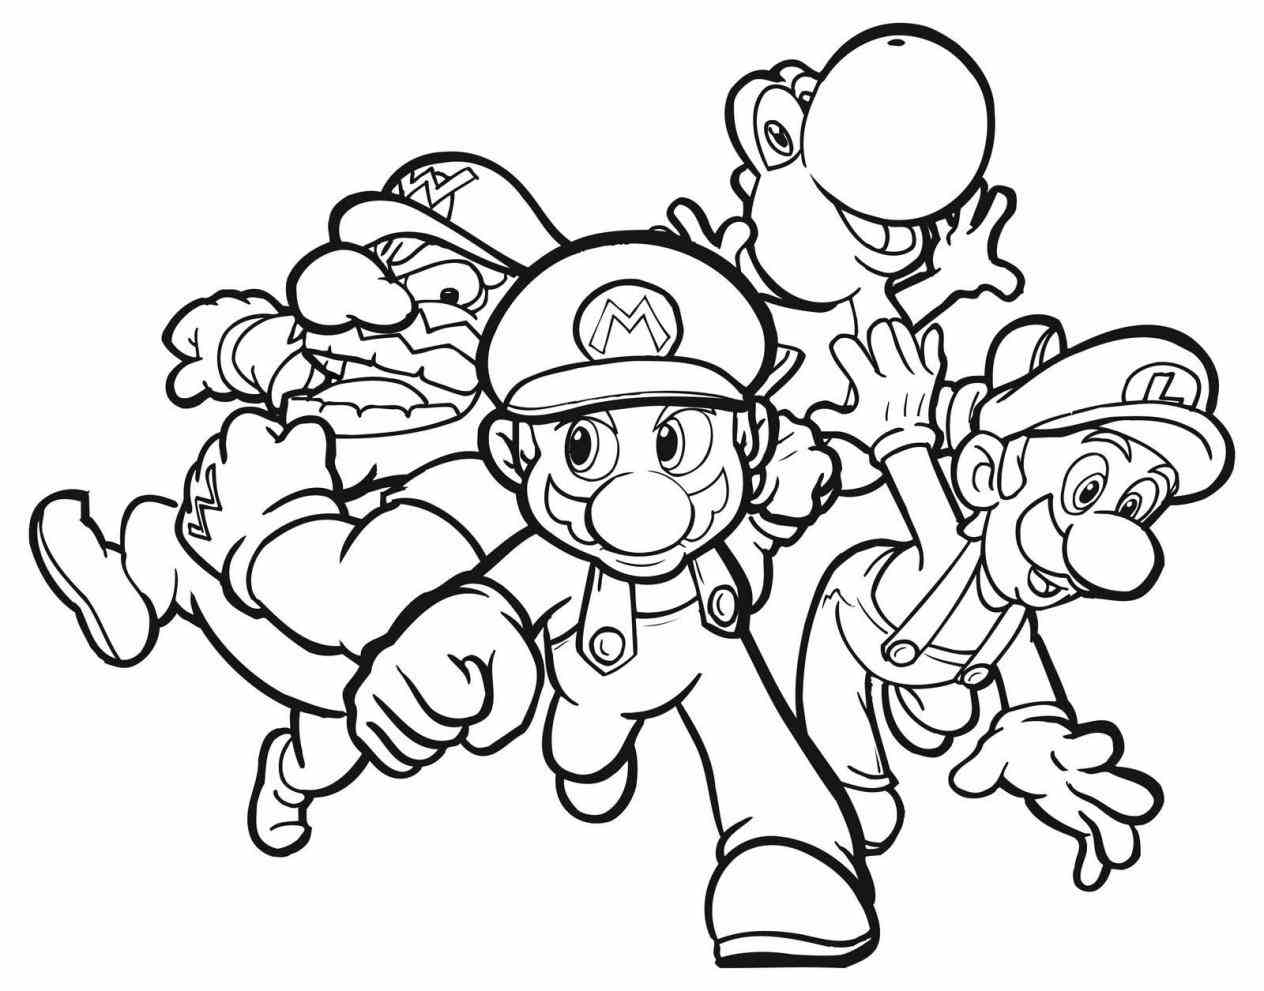 1264x991 Anime Boy Coloring Pages Boys For Friends From Pokemon Org